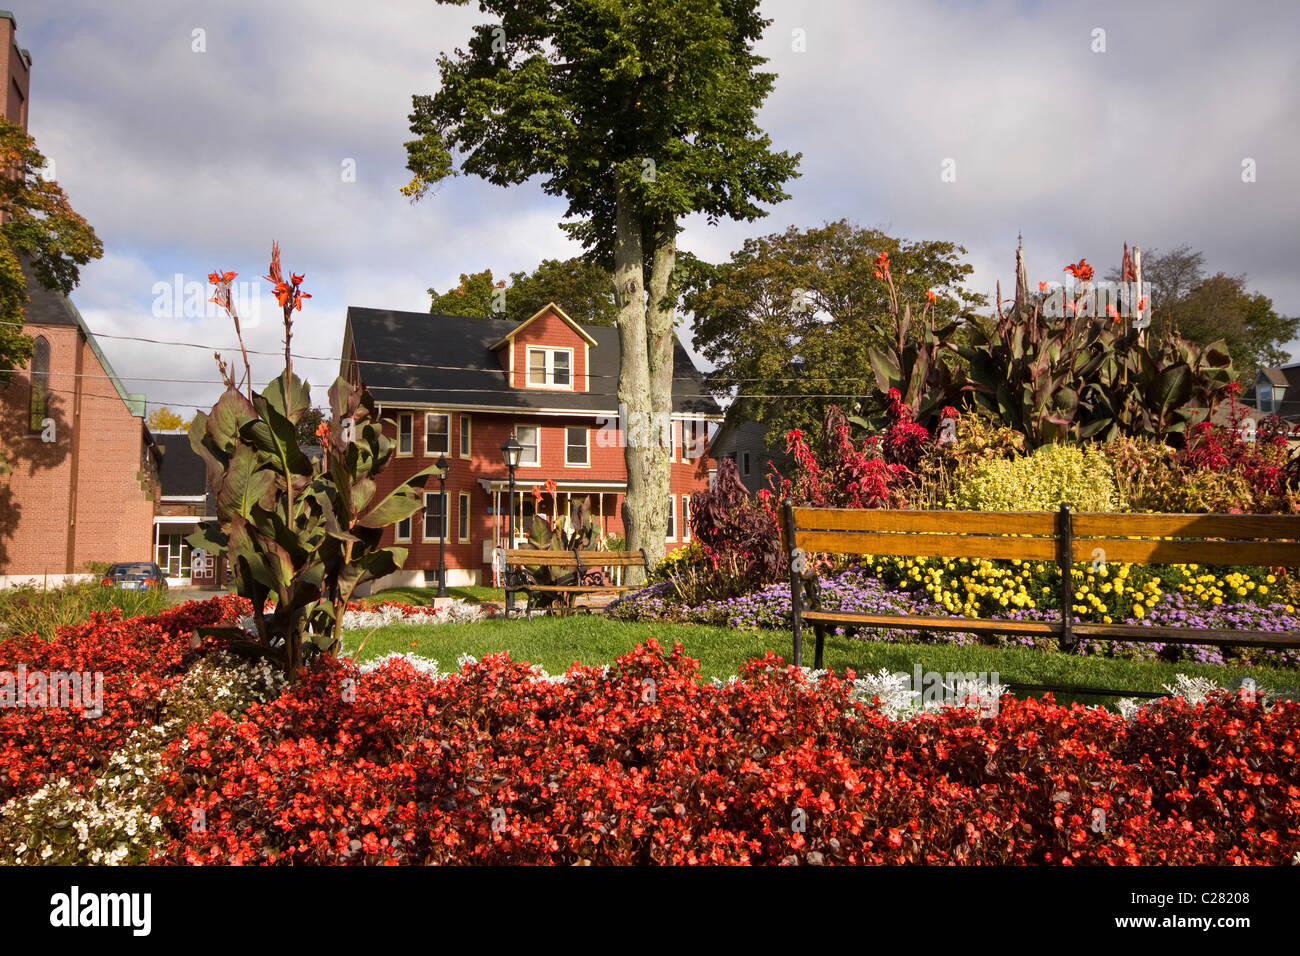 Pretty and historic old neighbourhoods in Charlottetown, Prince Edward Island, Canada - Stock Image